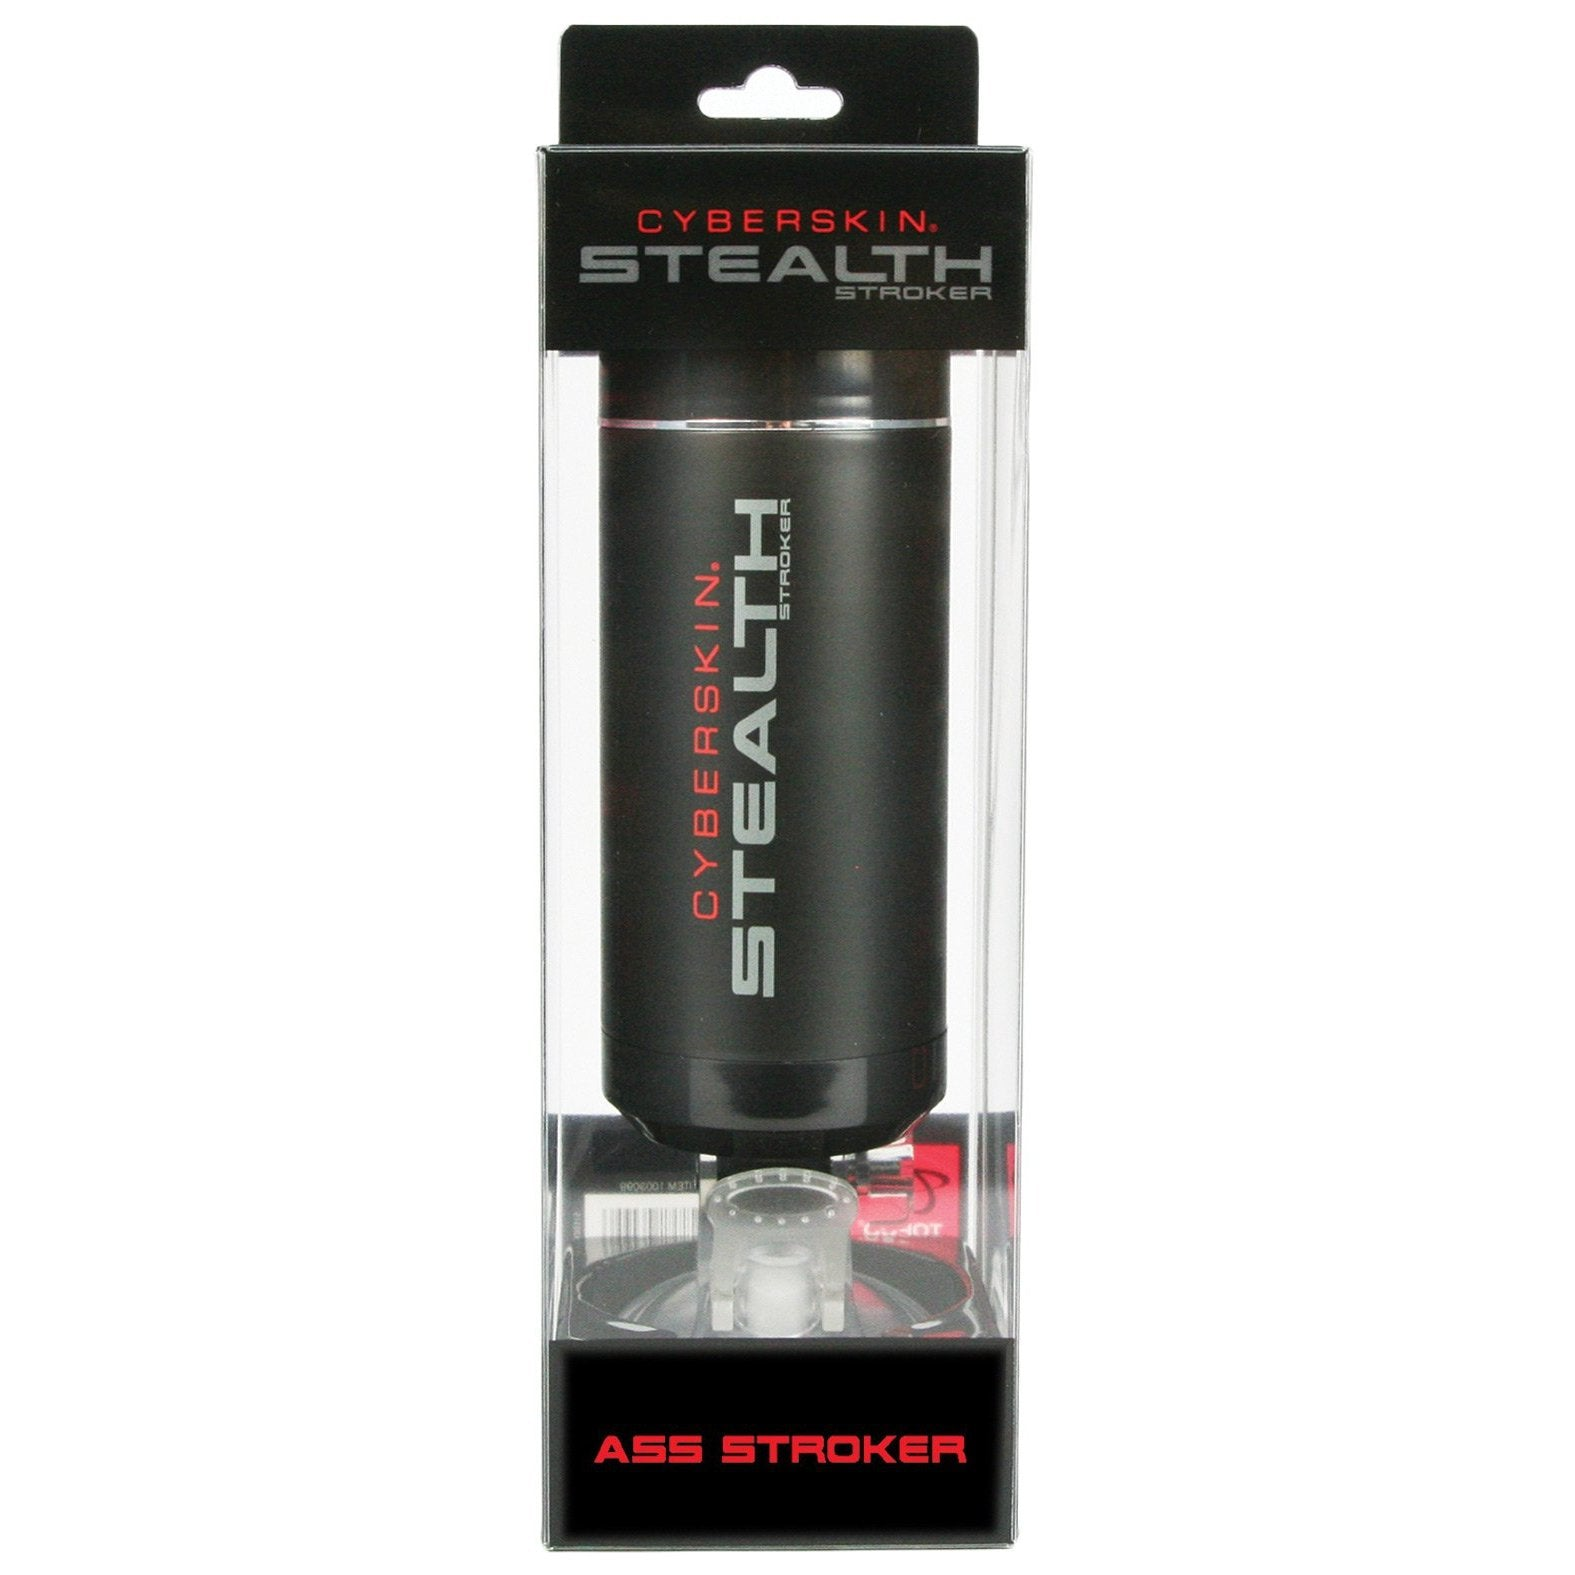 CyberSkin Stealth Anal Stroker - Gay Men's Sex Toys - Adam's Toy Box